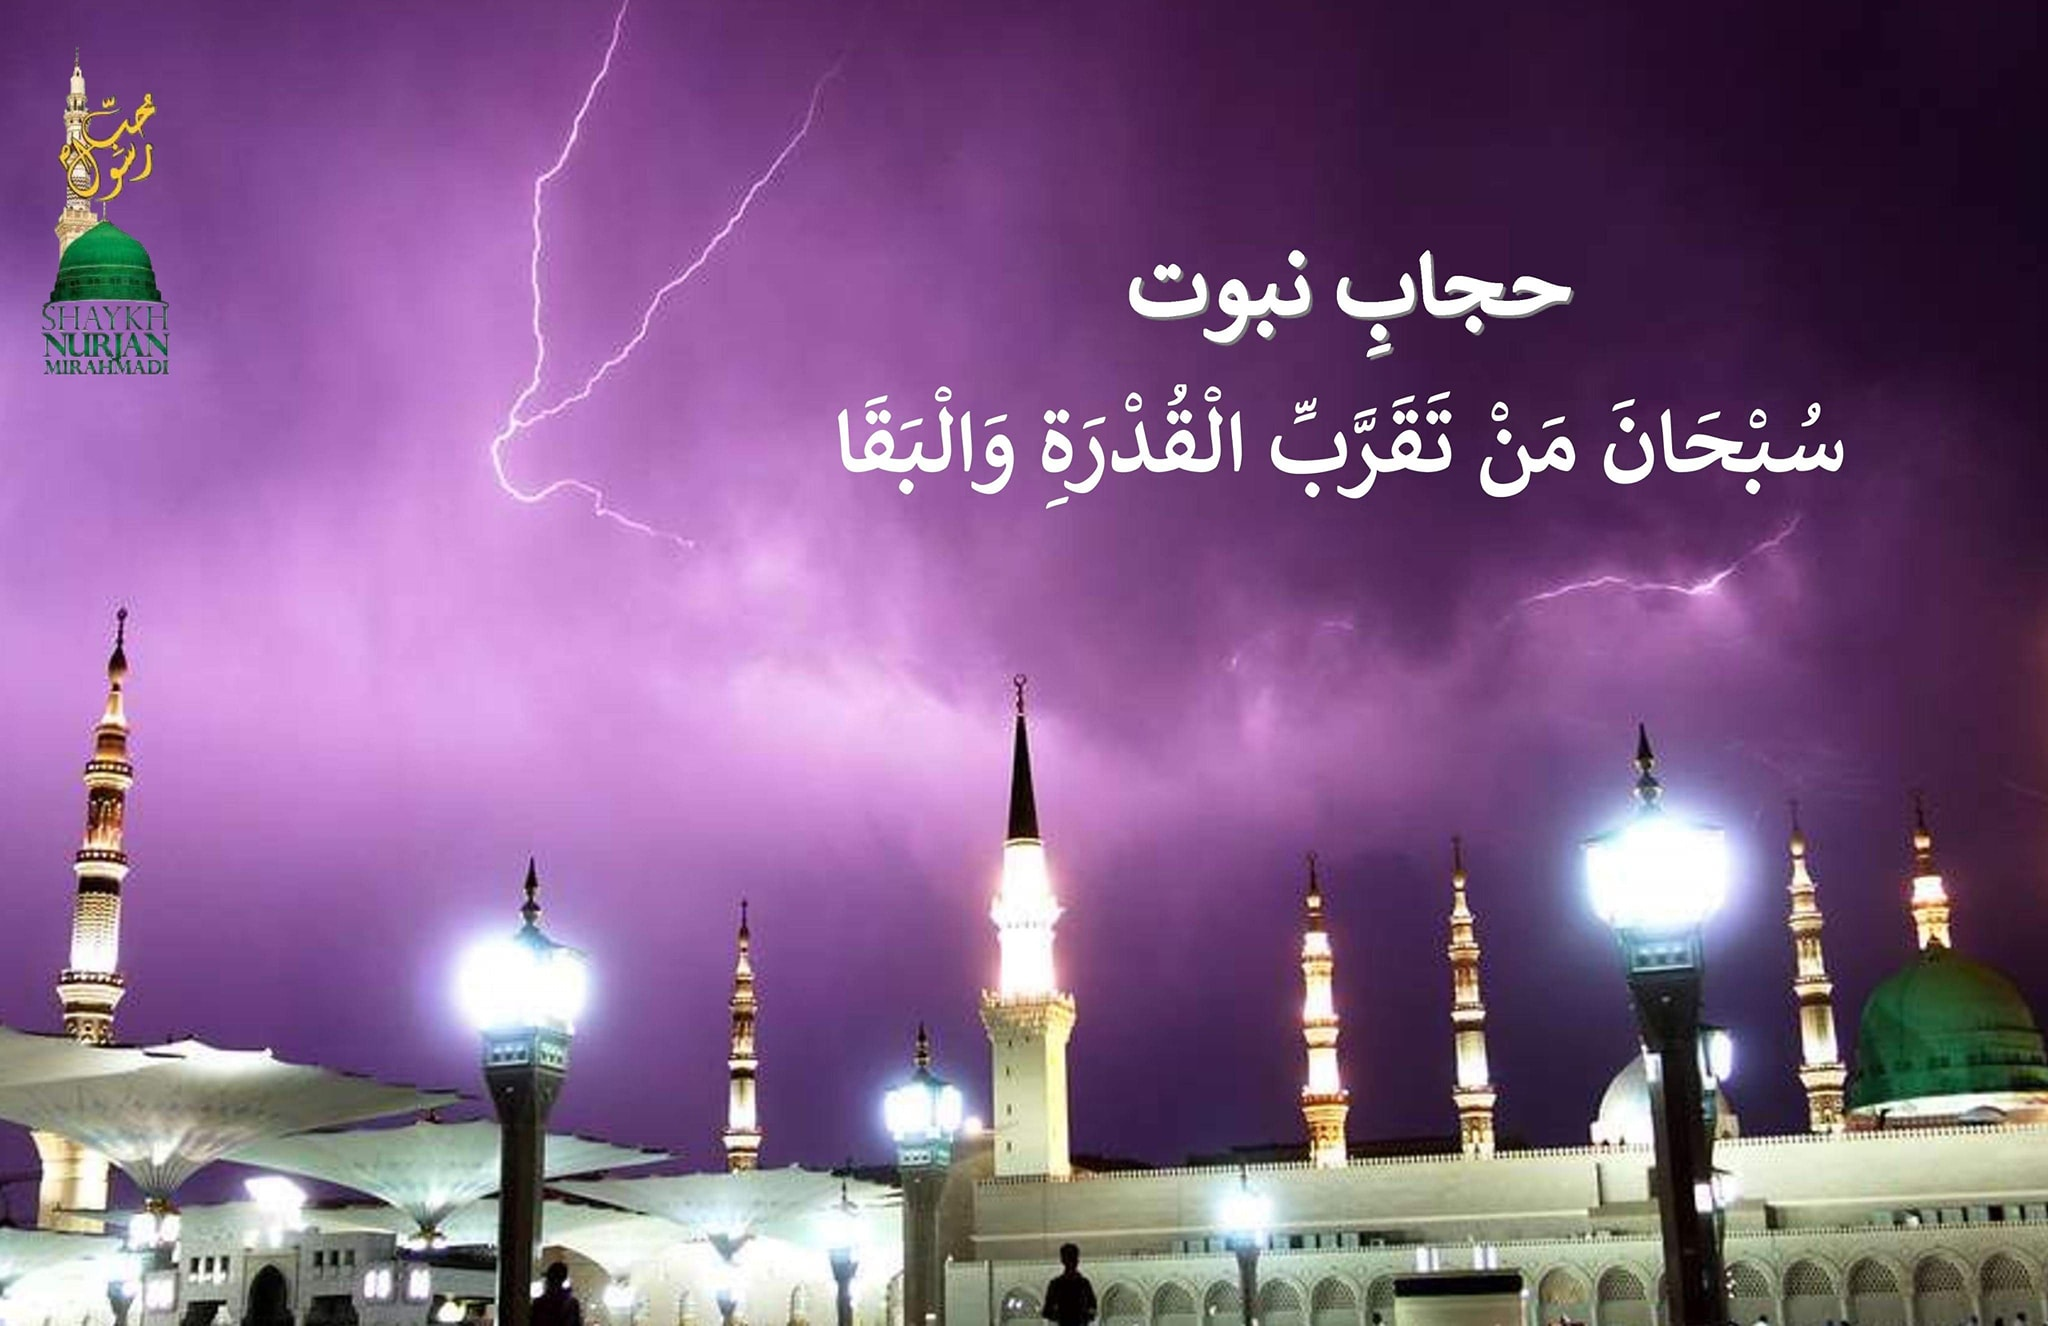 Question: What to recite for Laylatul Qadr (night of power)? سوال: پیارے سیدی، ...